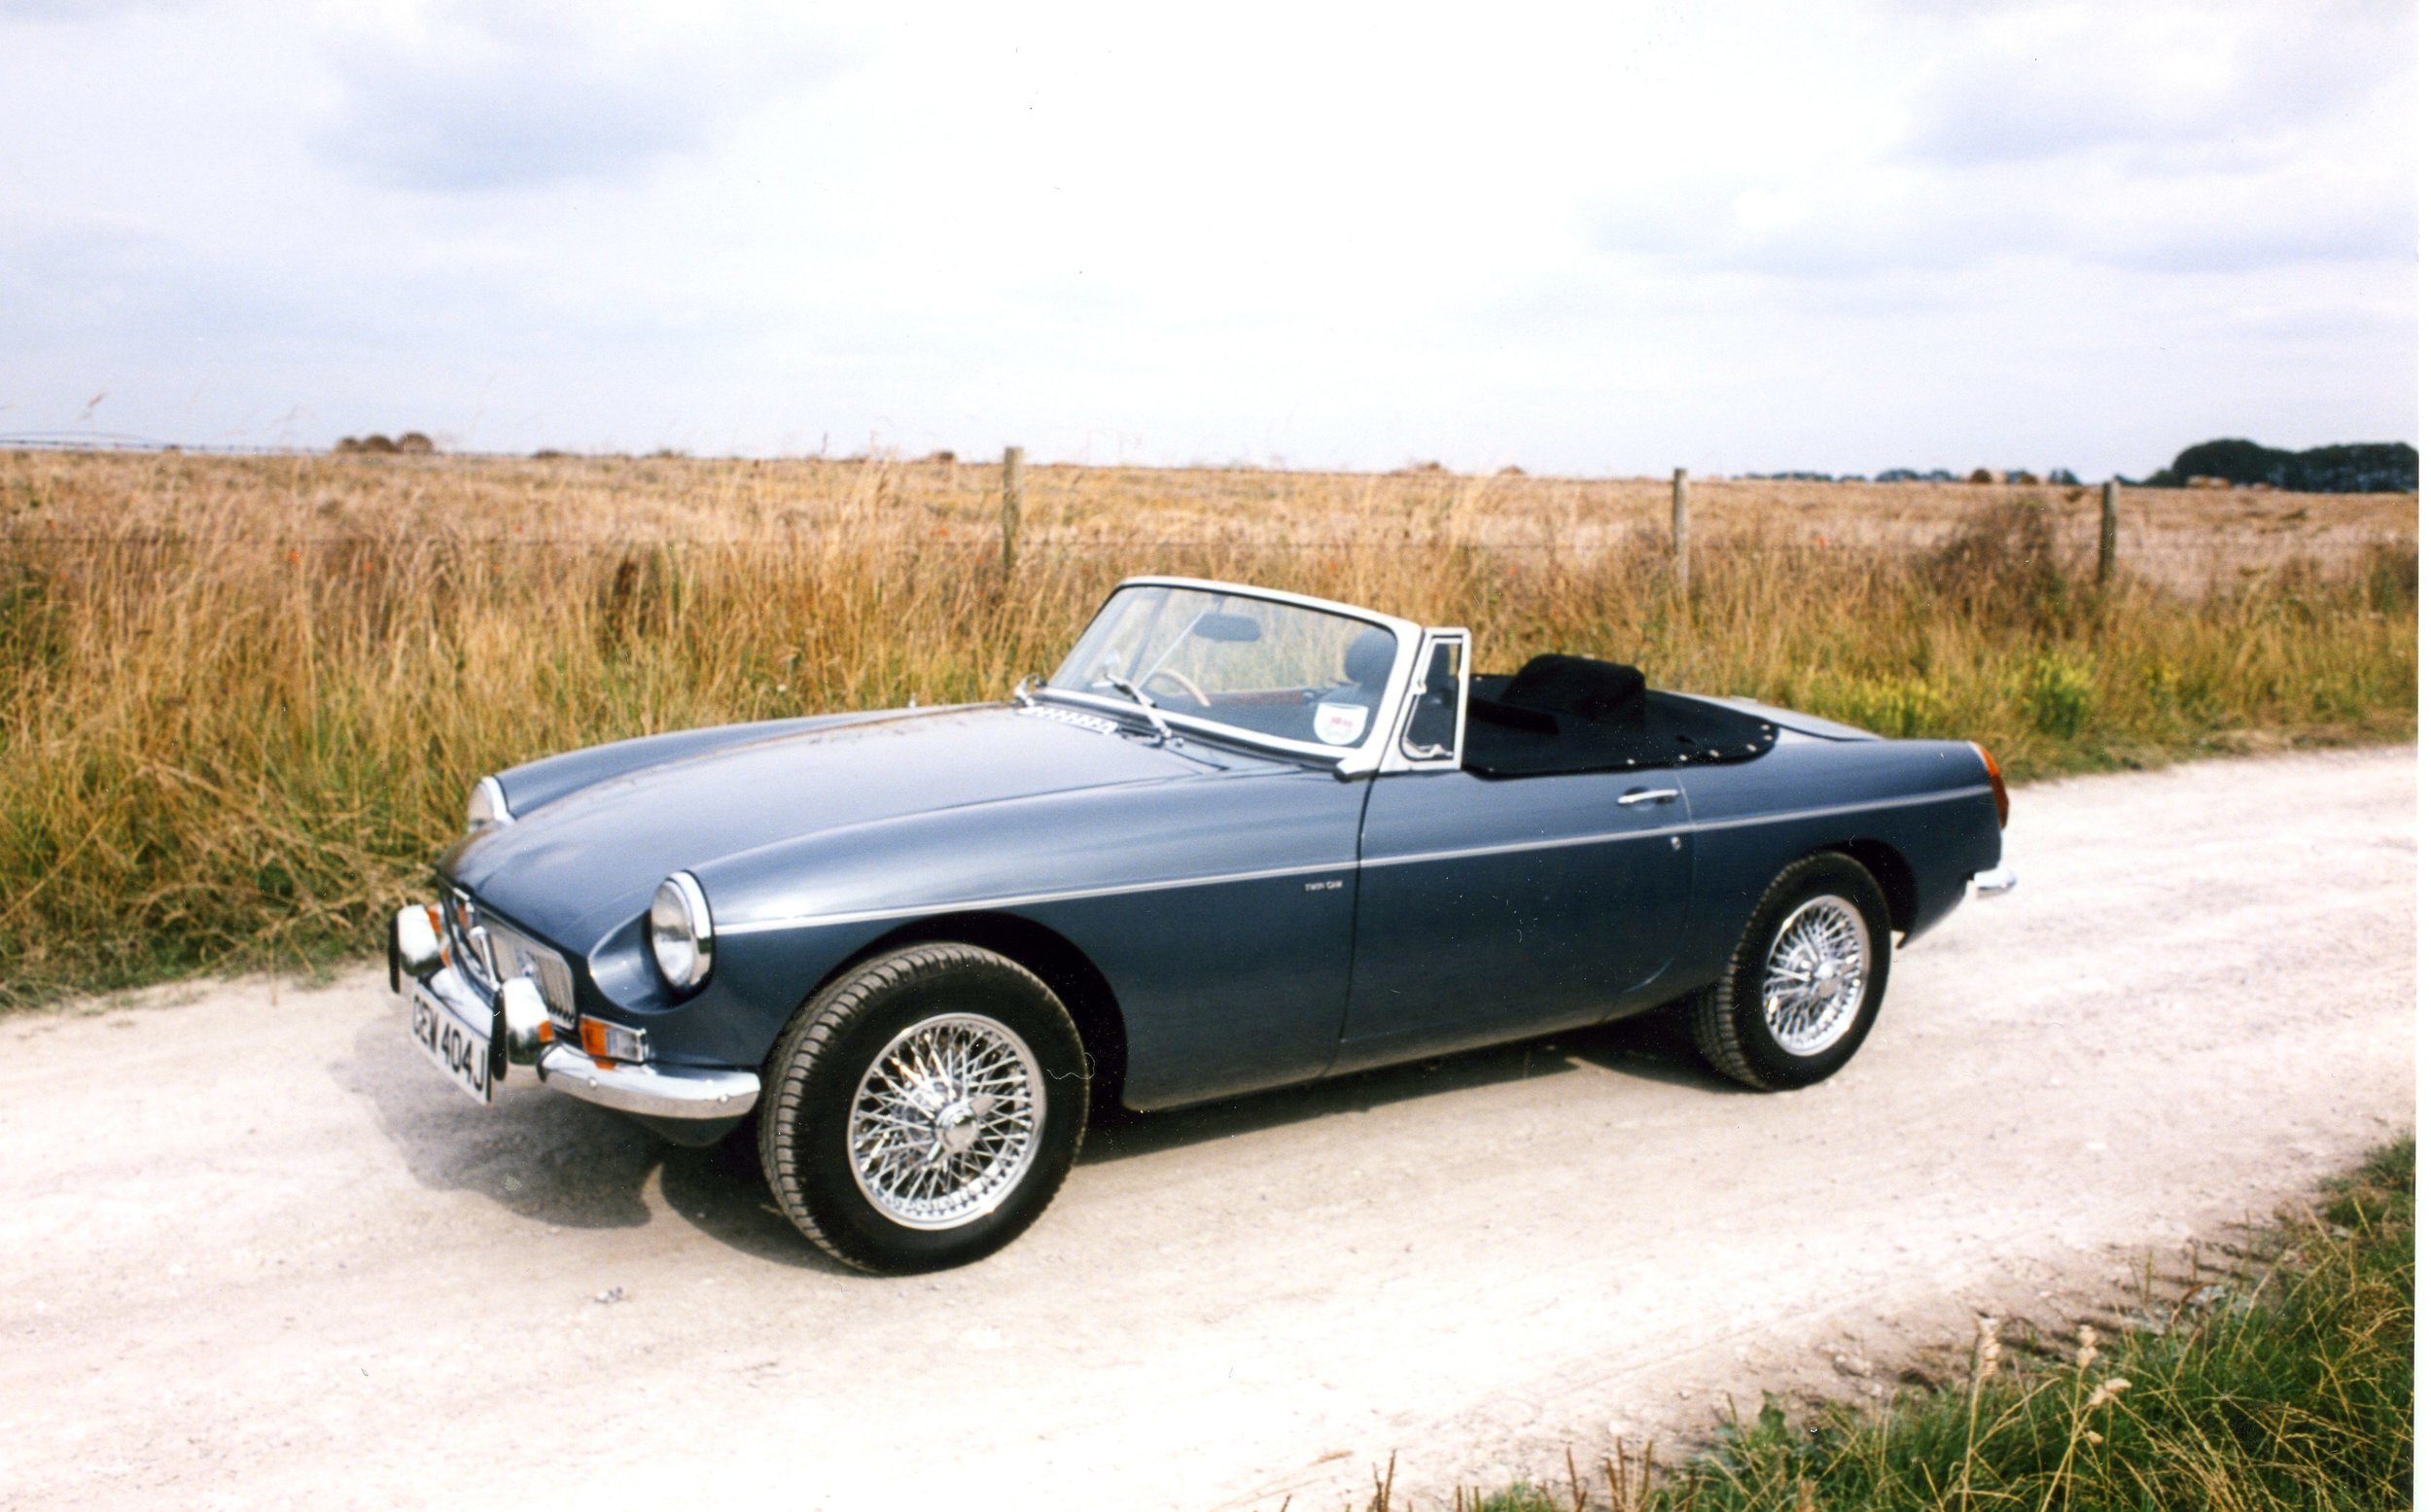 My MGB - Heritage shell, Twin-cam M16 engine, 5-speed gearbox.